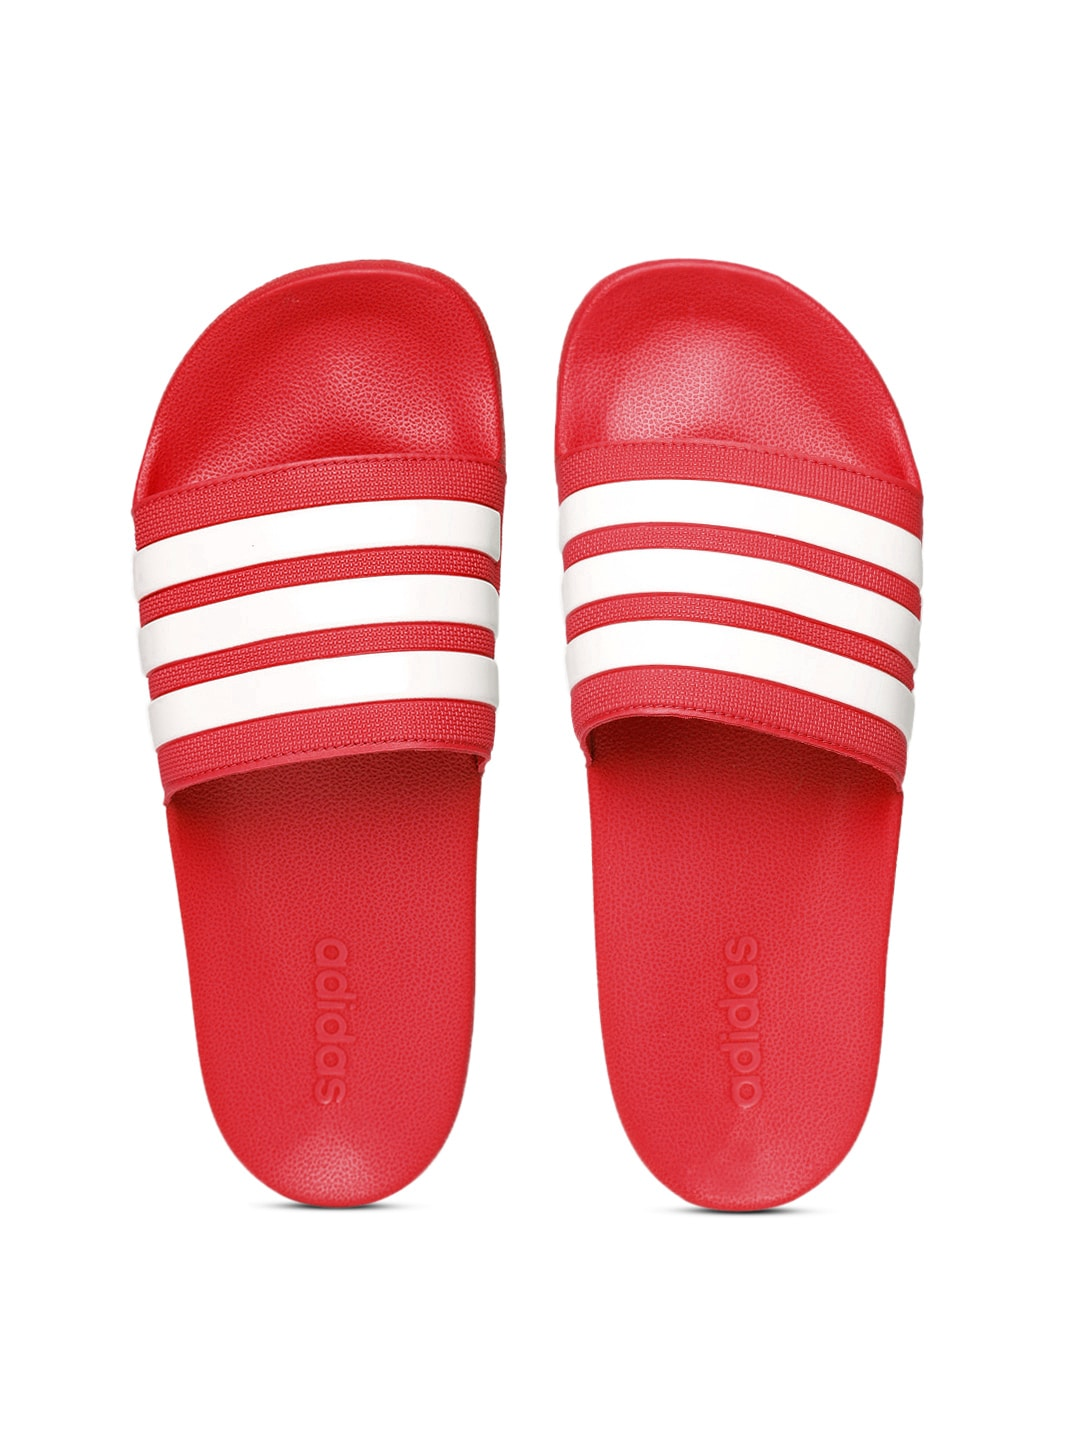 a2b249fd8a73 Red Adidas Flip Flops - Buy Red Adidas Flip Flops online in India